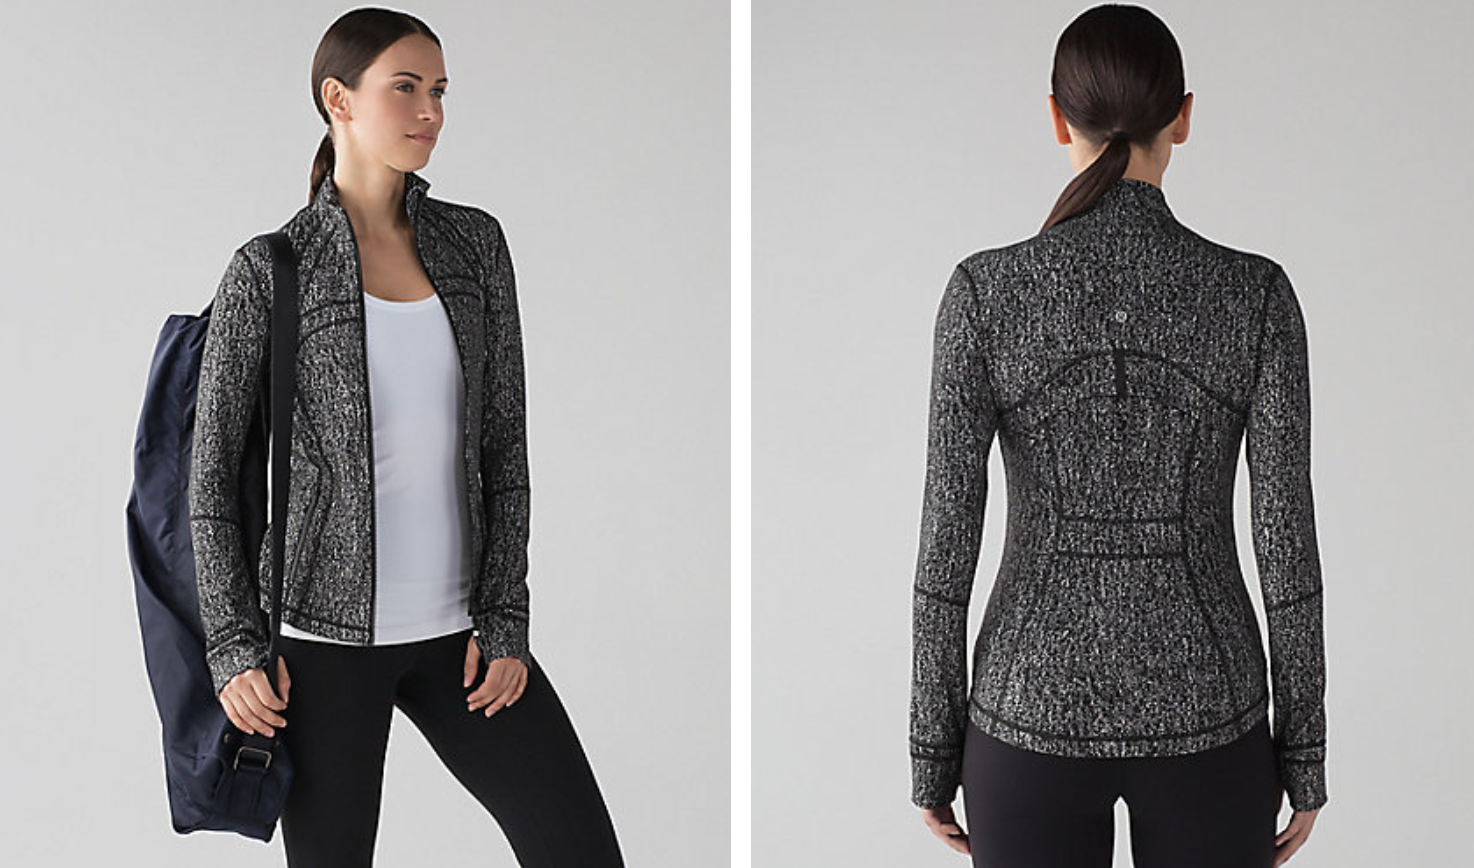 https://api.shopstyle.com/action/apiVisitRetailer?url=https%3A%2F%2Fshop.lululemon.com%2Fp%2Fjackets-and-hoodies-jackets%2FDefine-Jacket%2F_%2Fprod5020299%3Frcnt%3D22%26N%3D1z13ziiZ7z5%26cnt%3D65%26color%3DLW4AJVS_027915&site=www.shopstyle.ca&pid=uid6784-25288972-7